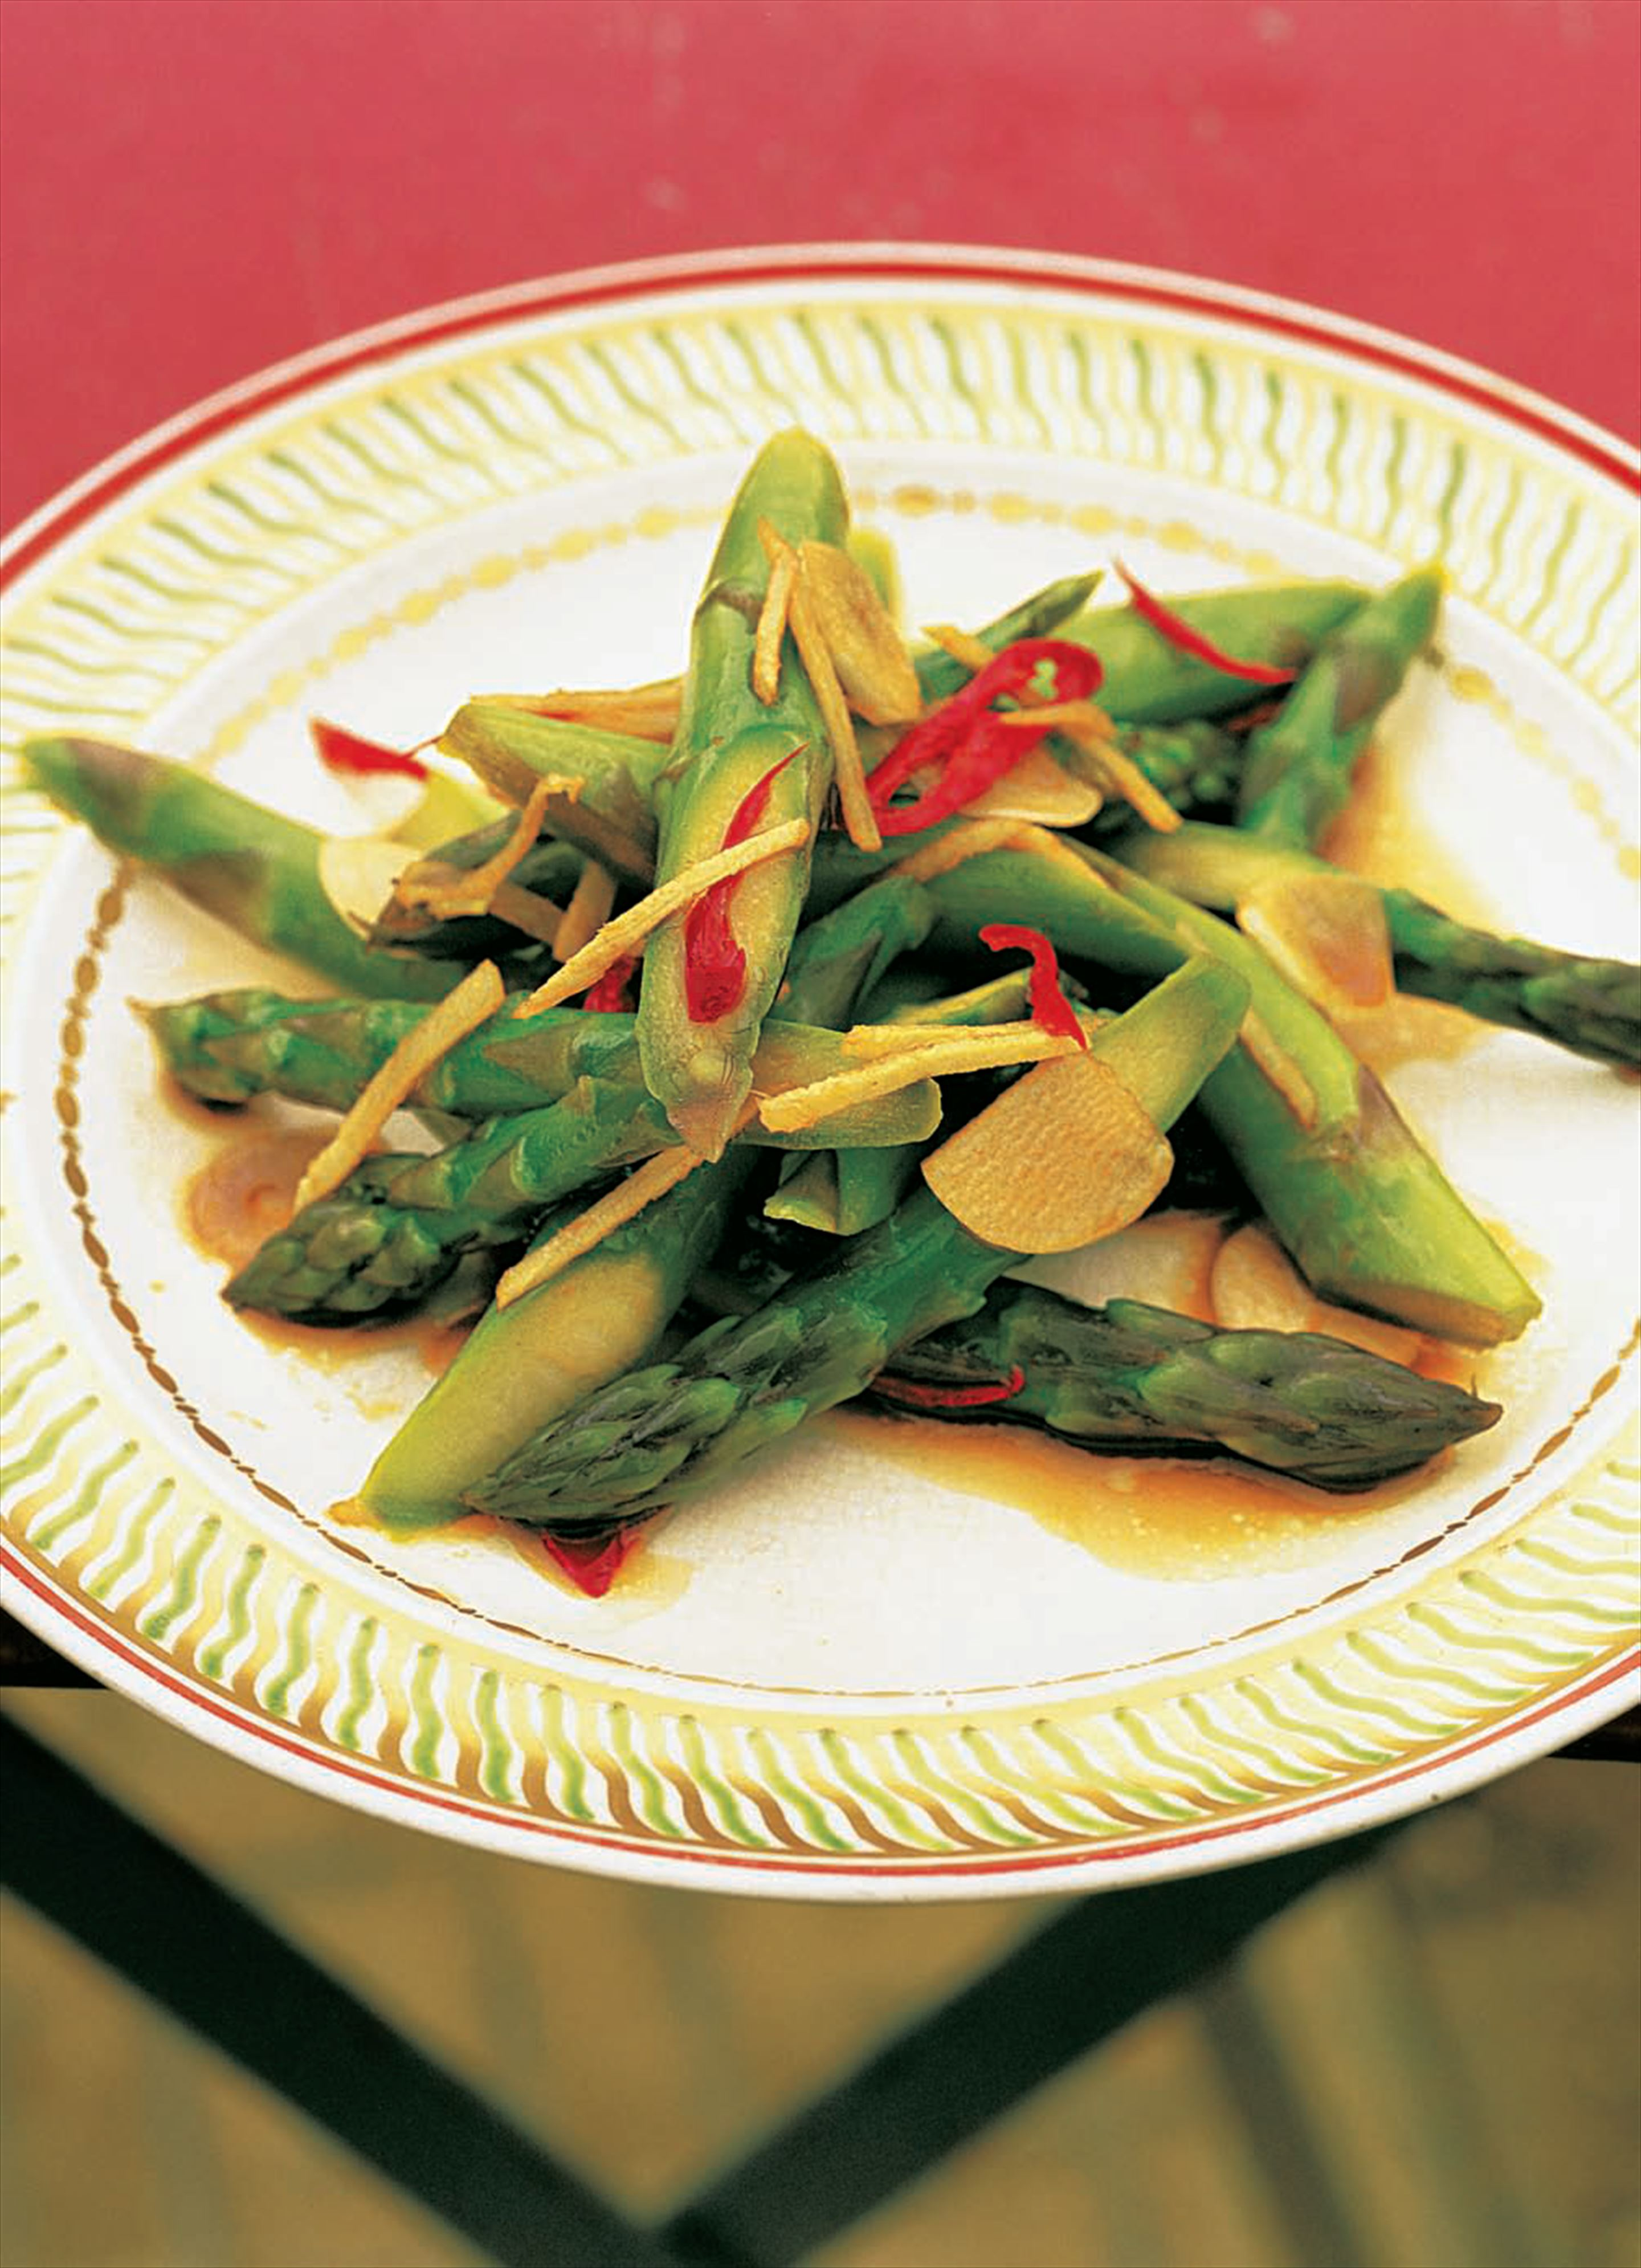 Asparagus with ginger and garlic